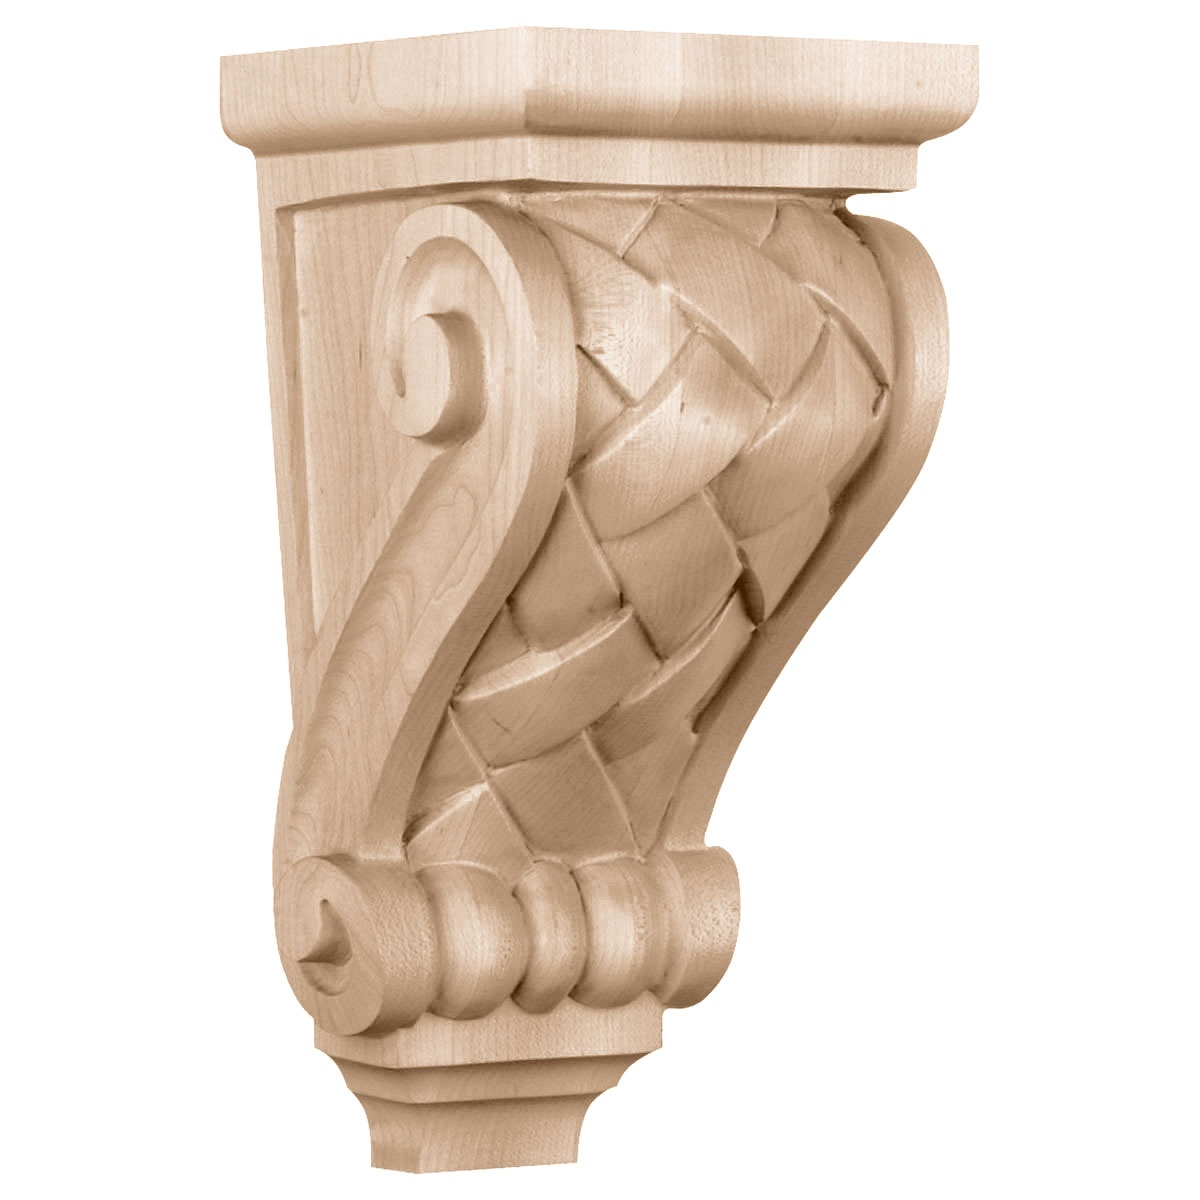 CORBW2 Medium Basket Weave Corbel